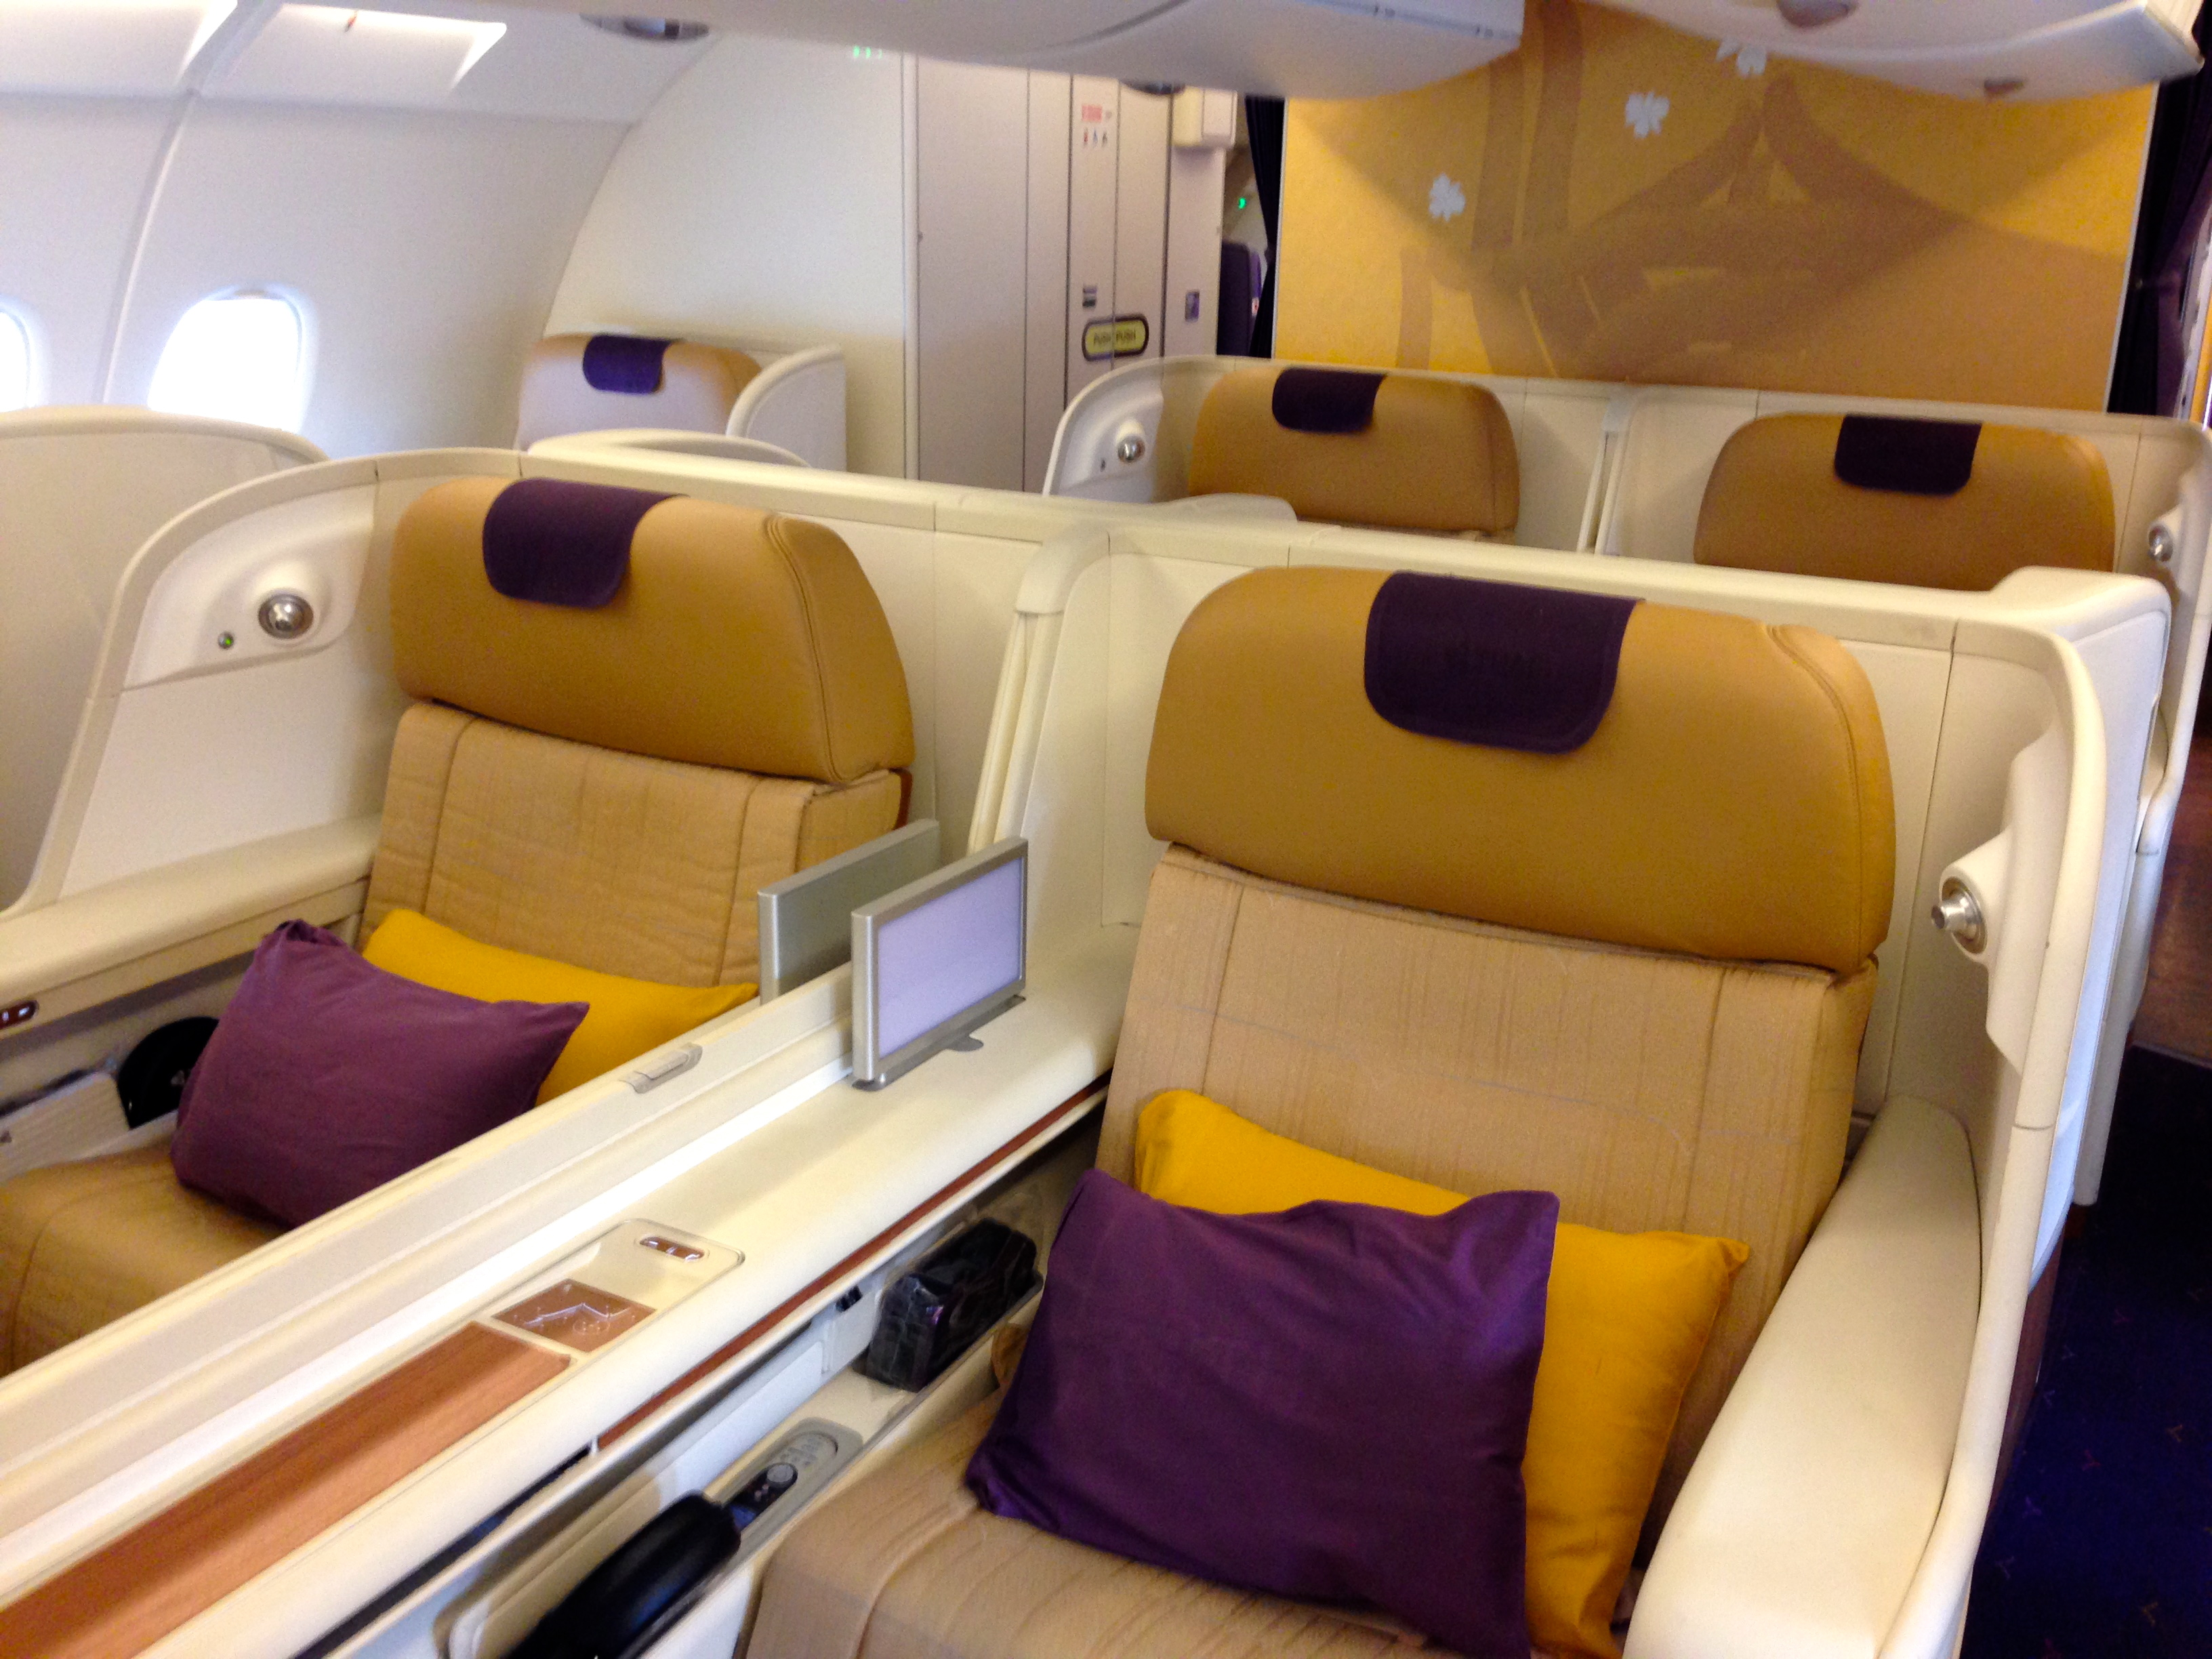 Thai Airways A380 First Class Seat Suite Frankfurt FRA to Bangkok BKK